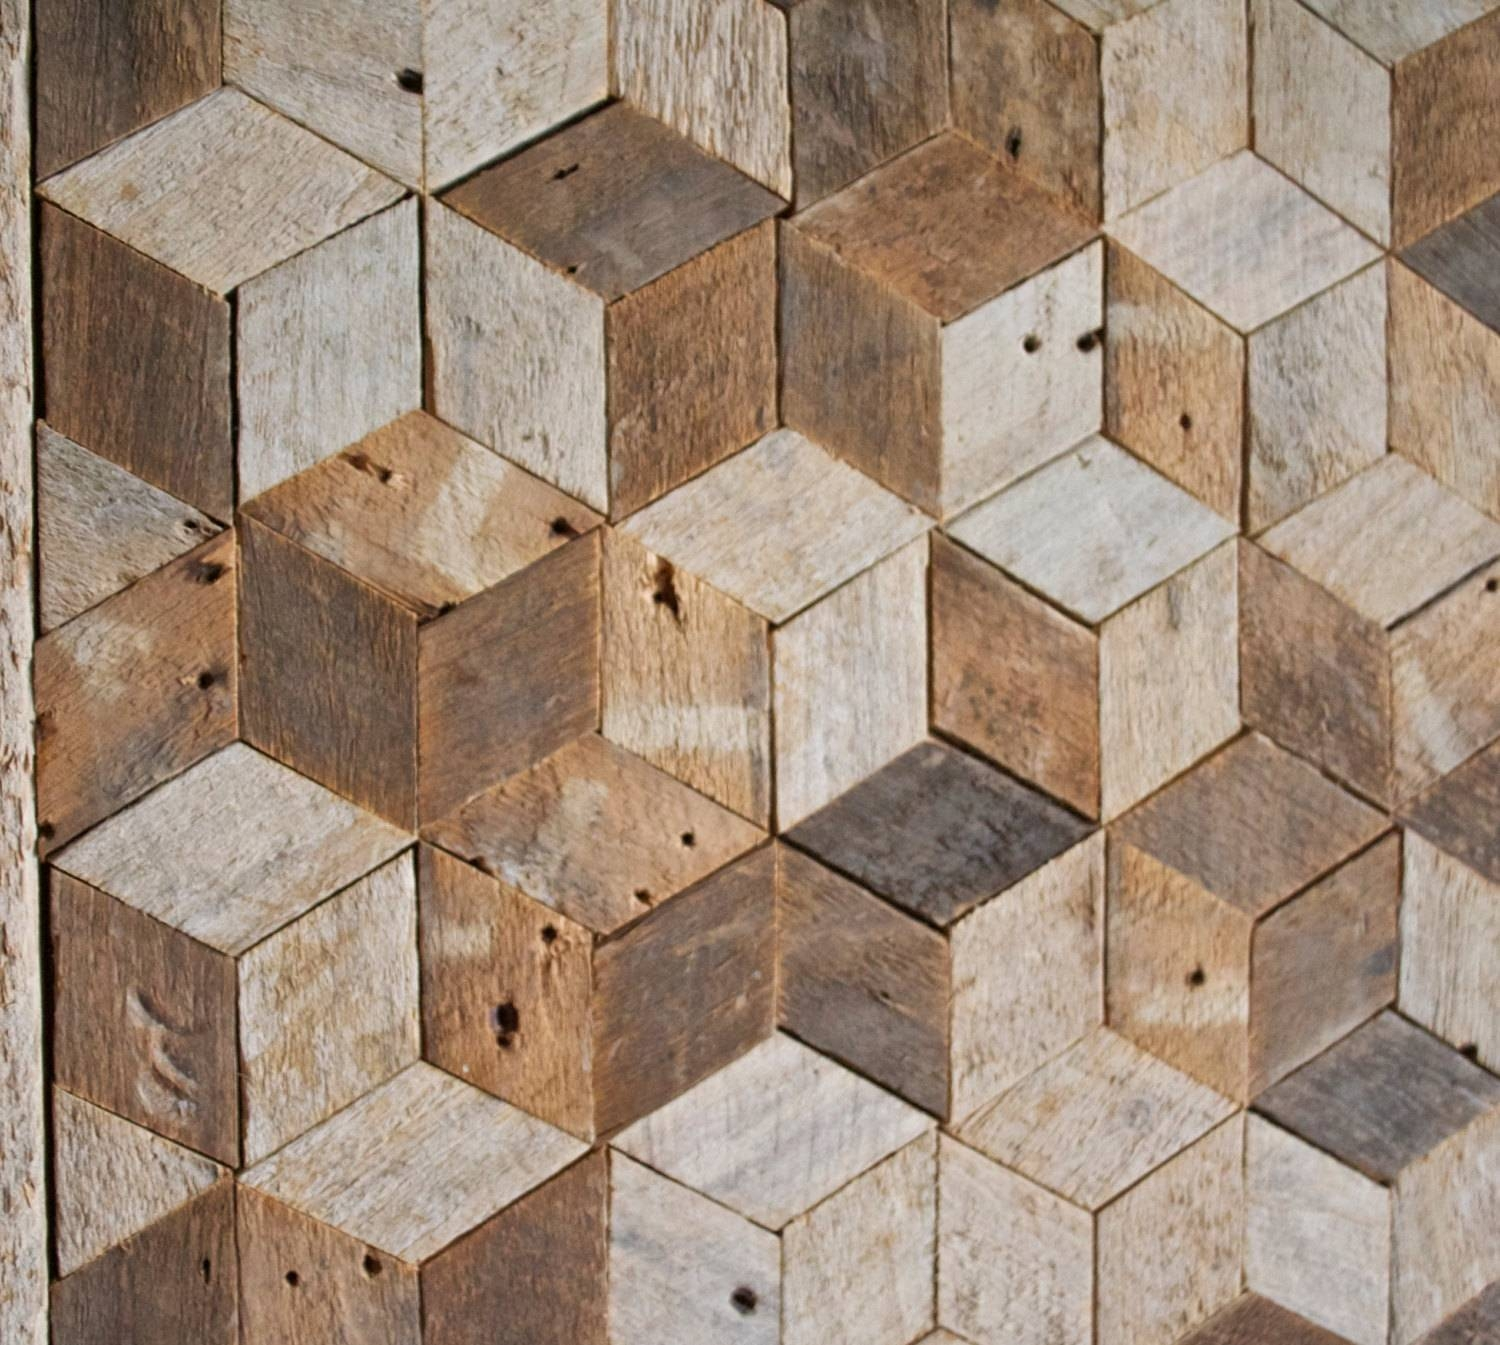 Reclaimed Wood Wall Art, Decor, Pattern, Lath, 3d, Cube, Geometric For Latest Cubes 3d Wall Art (View 12 of 20)